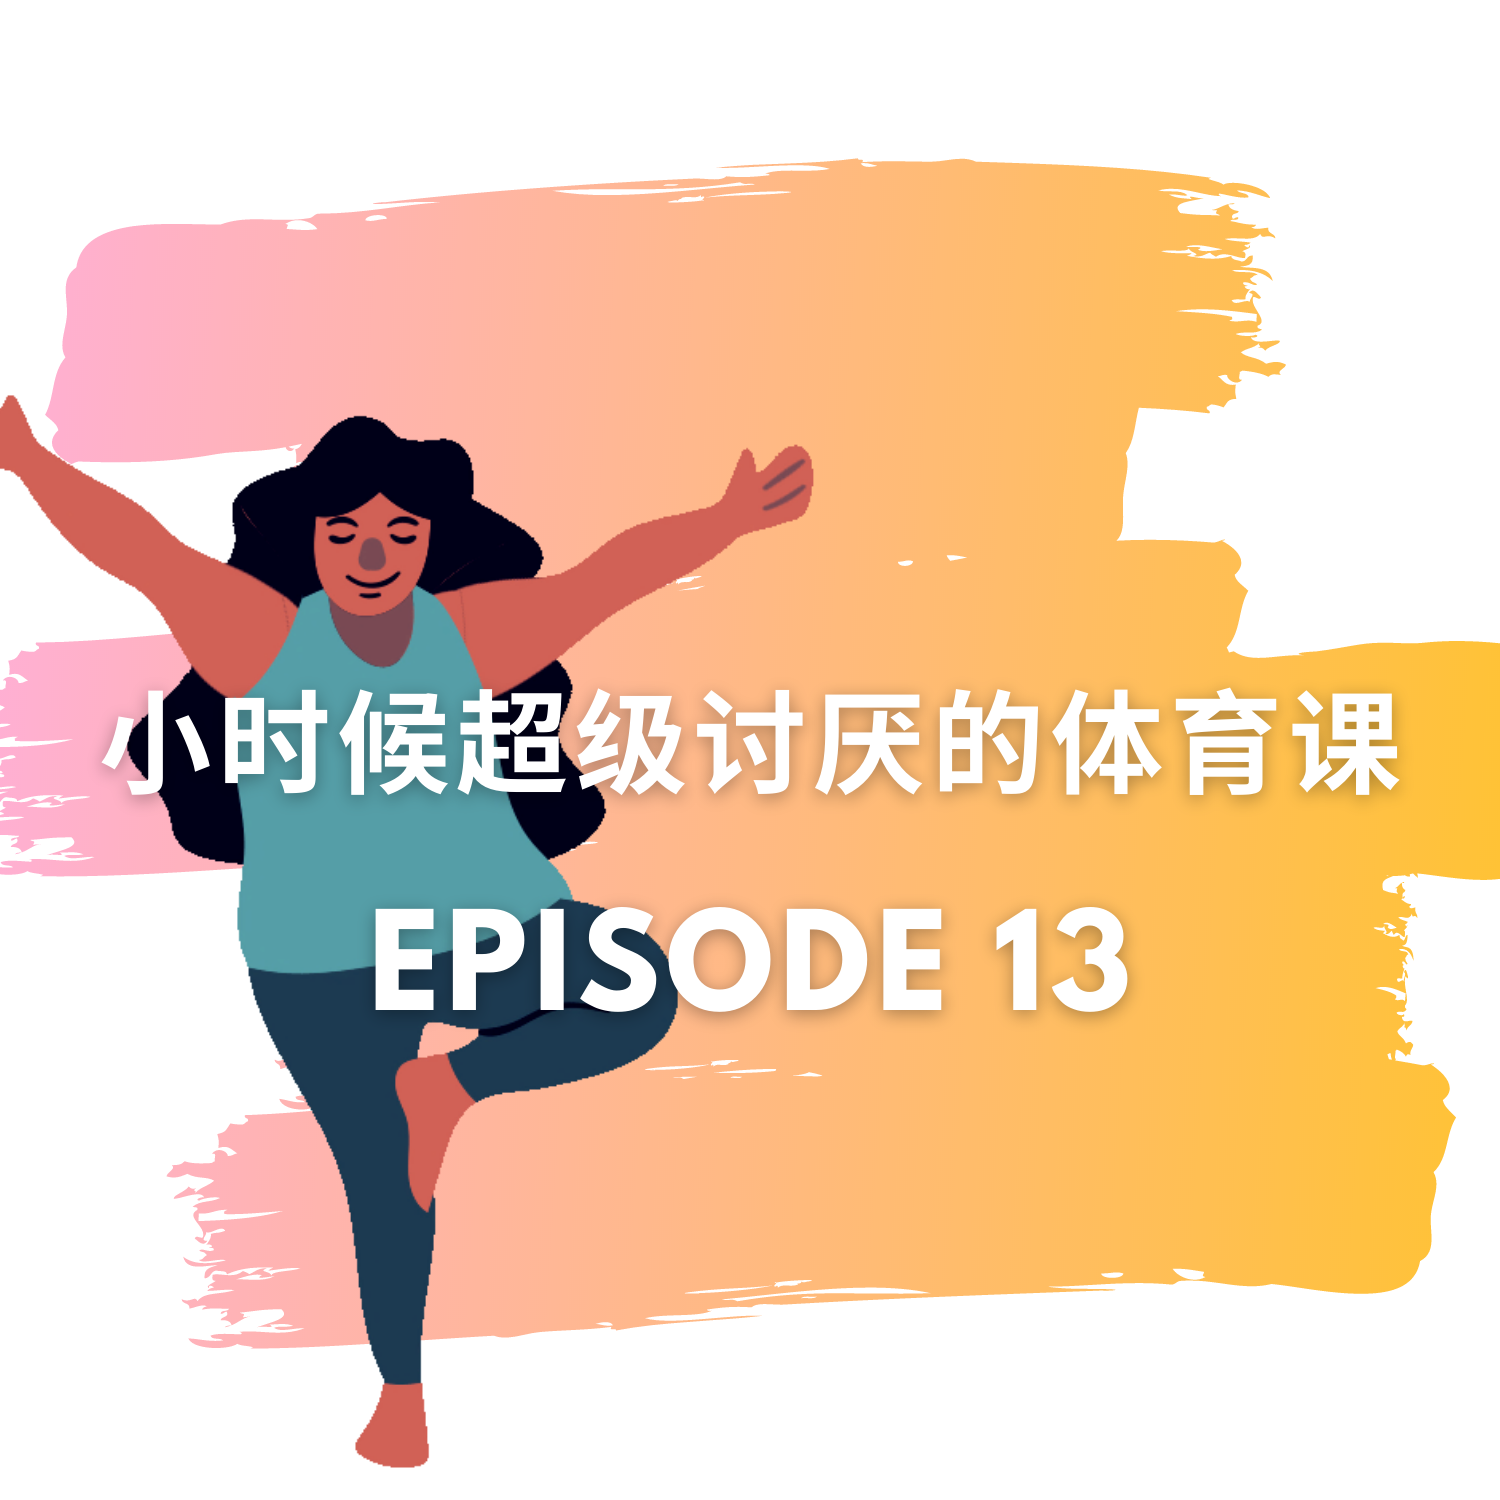 EPISODE 13   小时候超级讨厌的体育课 We hated PE (physical education) classes!